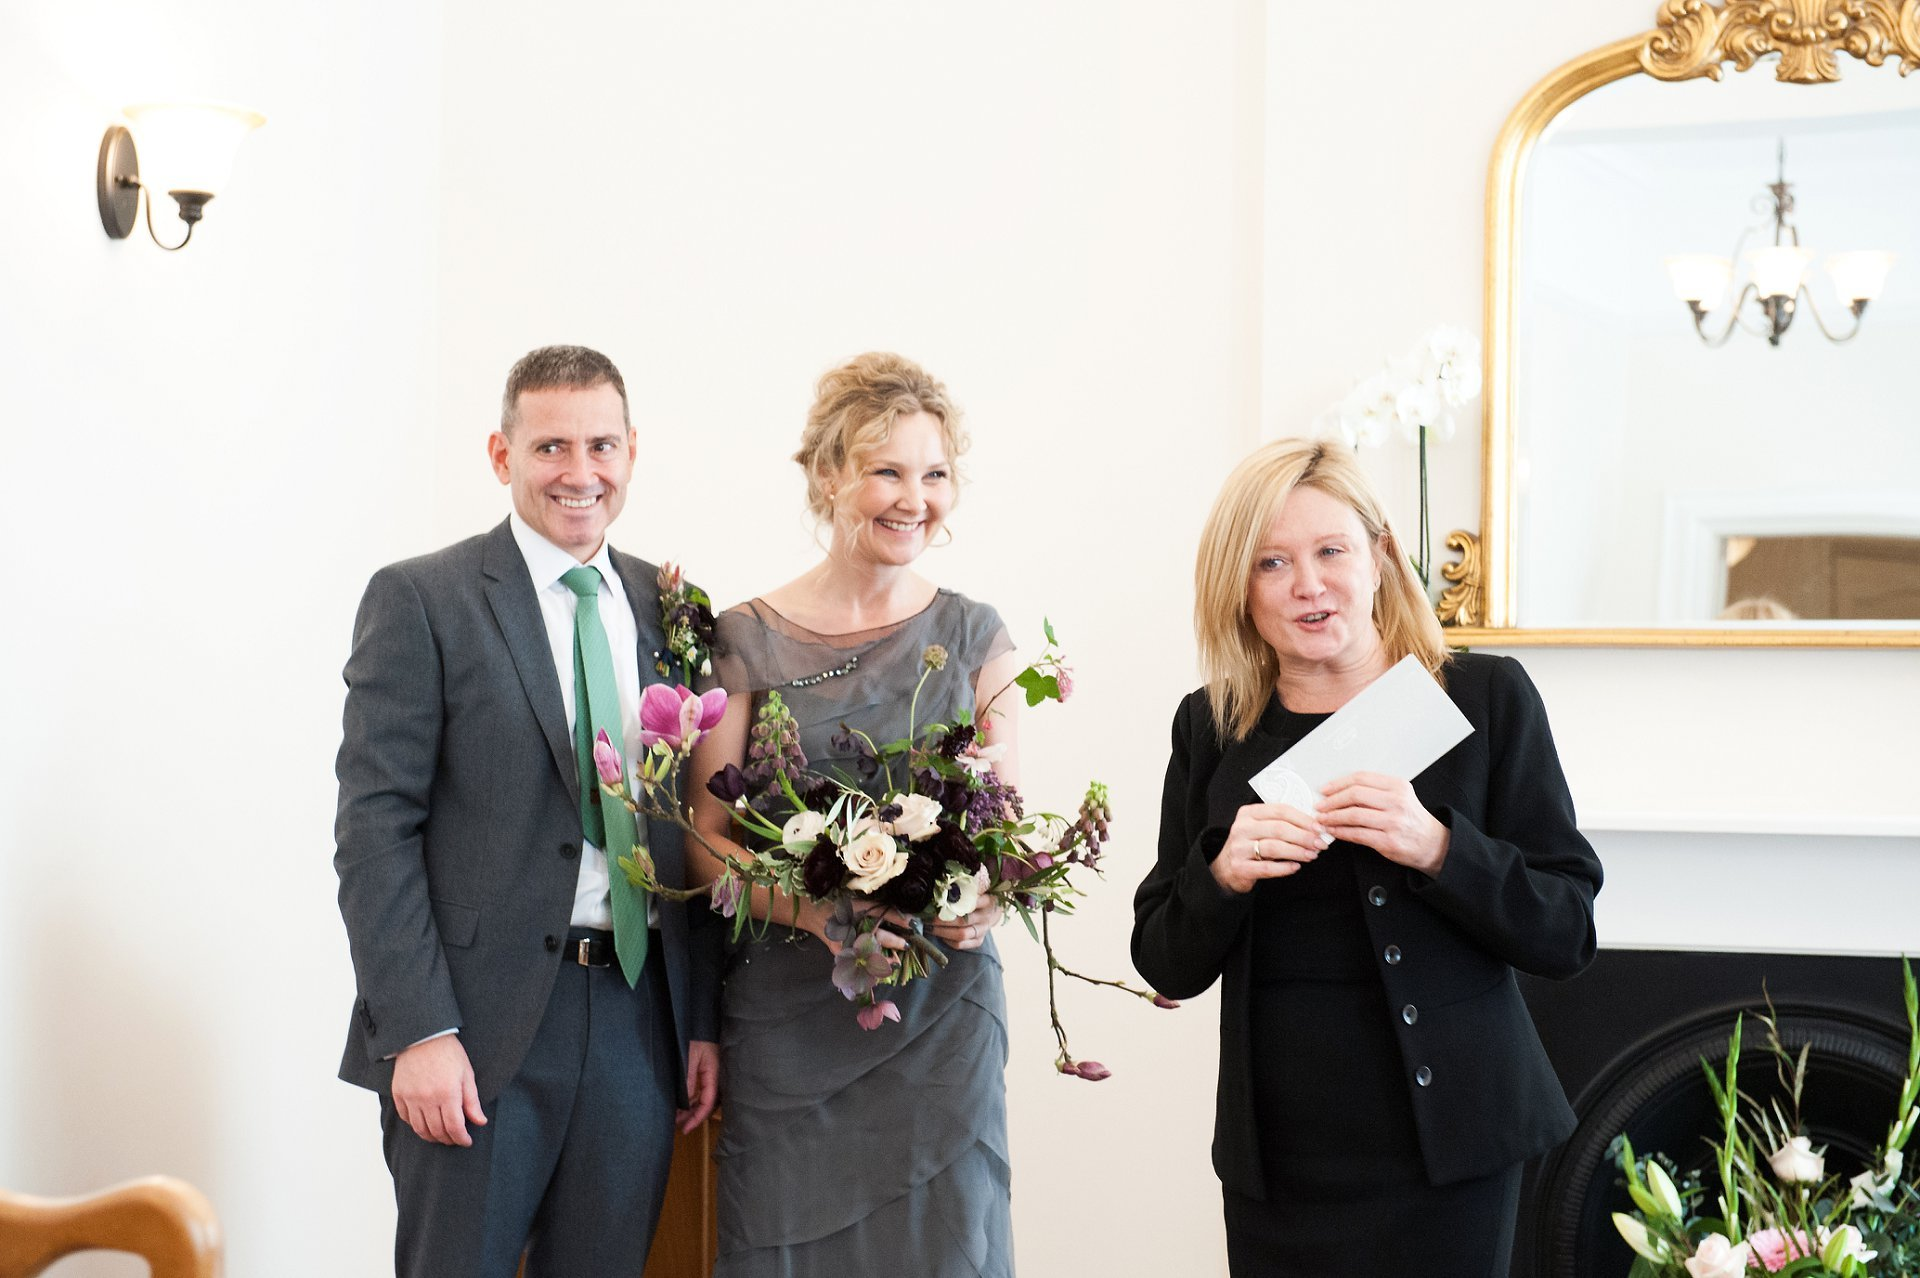 Greenwich Registrar hands over Wedding Certificate to Bride and Groom at Woolwich Town Hall